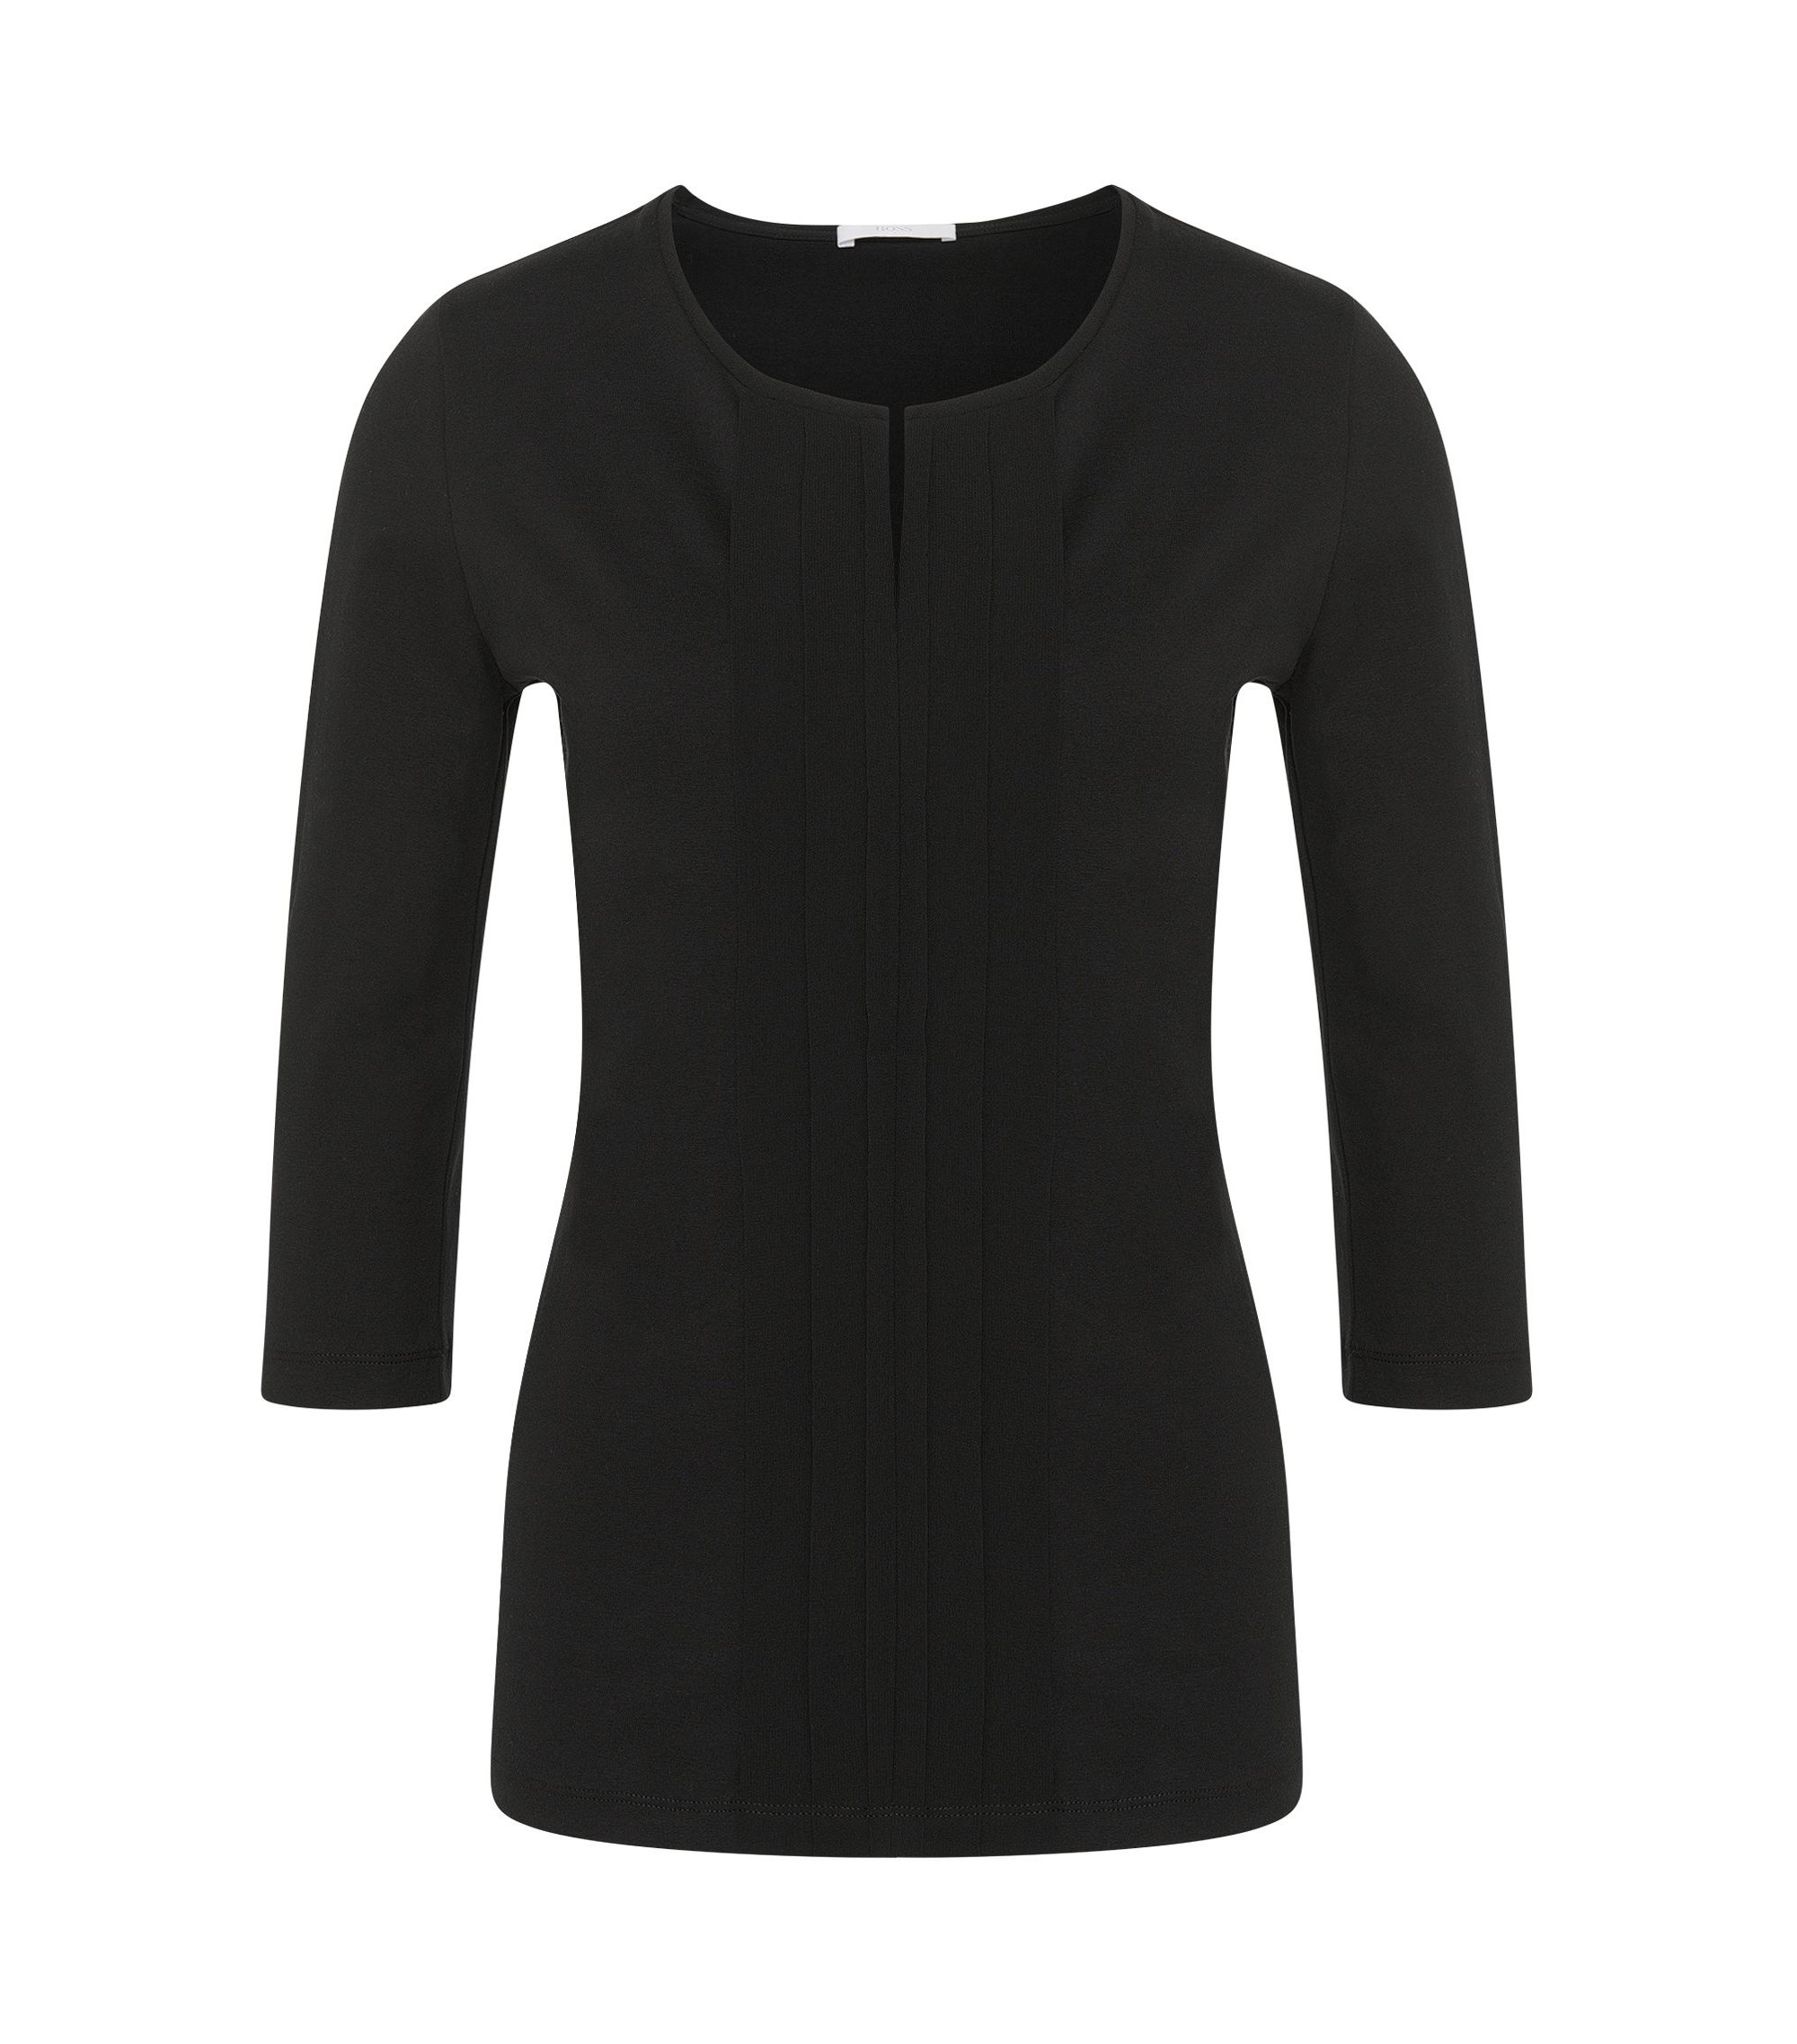 Jersey top with pleated detail, Black